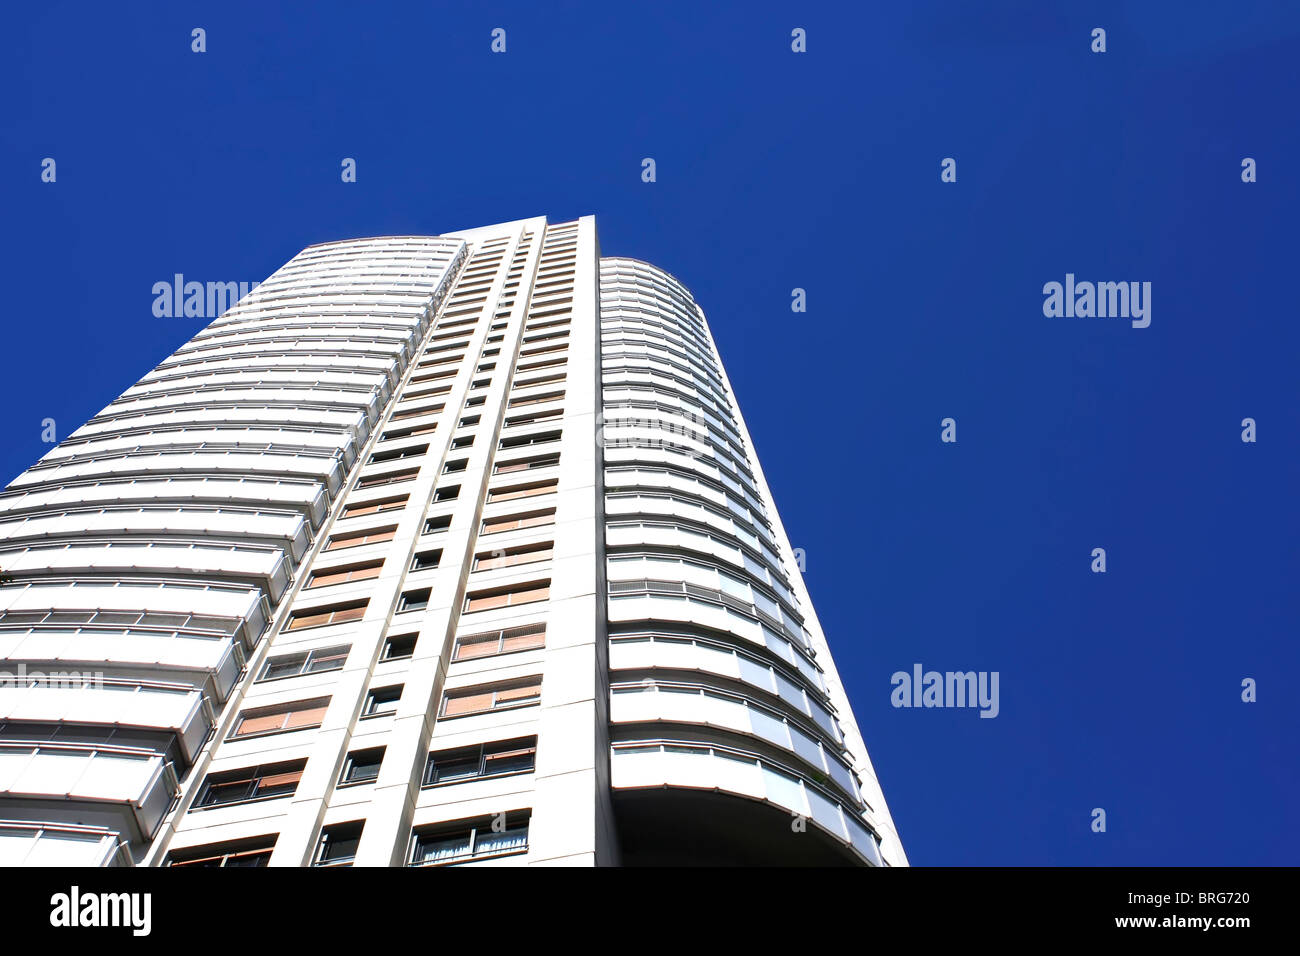 Buidling in Palermo, Buenos Aires, Argentina. - Stock Image